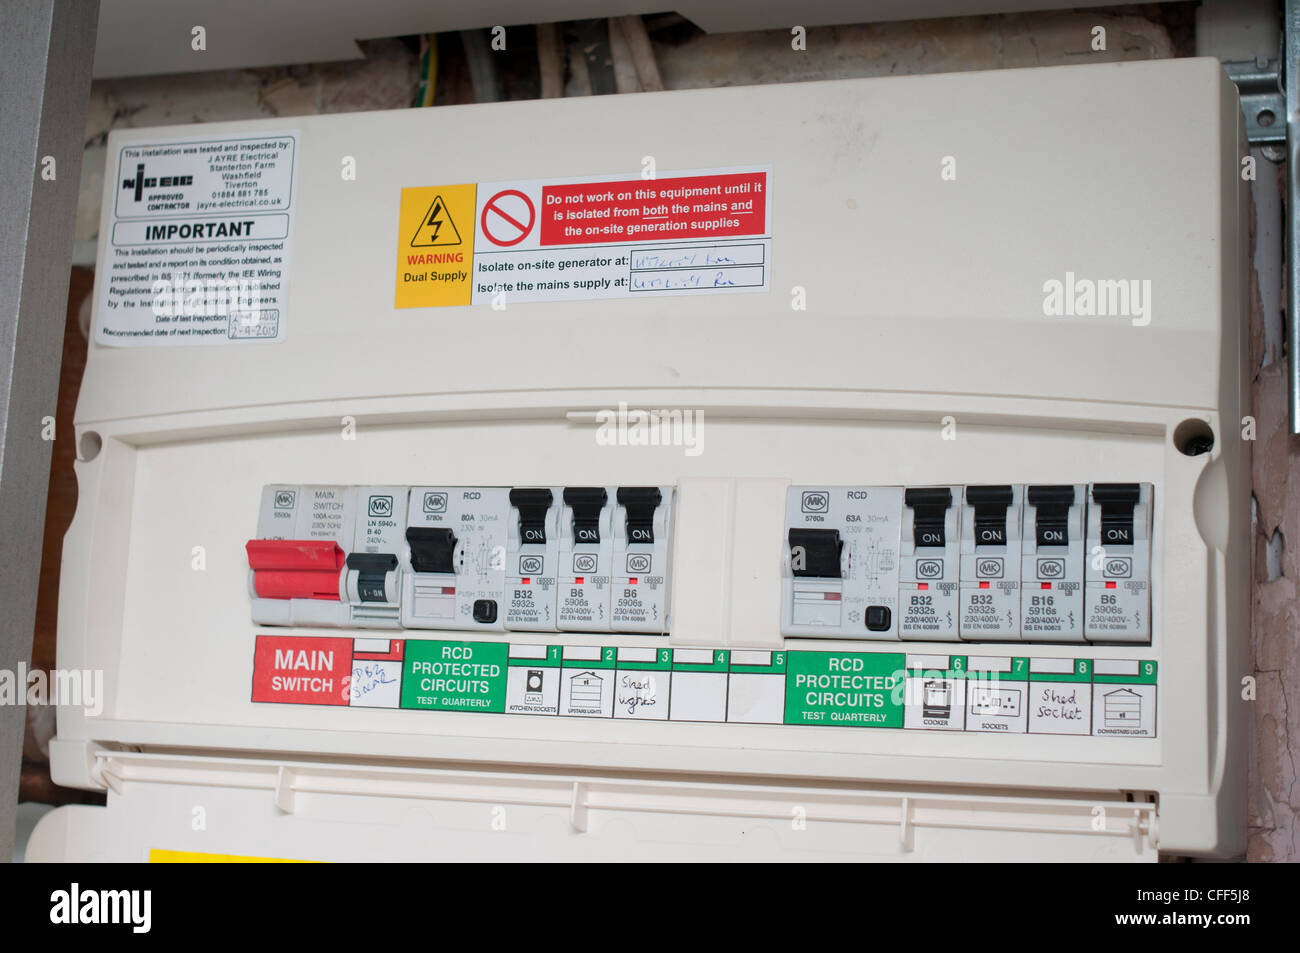 domestic fuse box stock photos & domestic fuse box stock images alamy home fuse  box tester